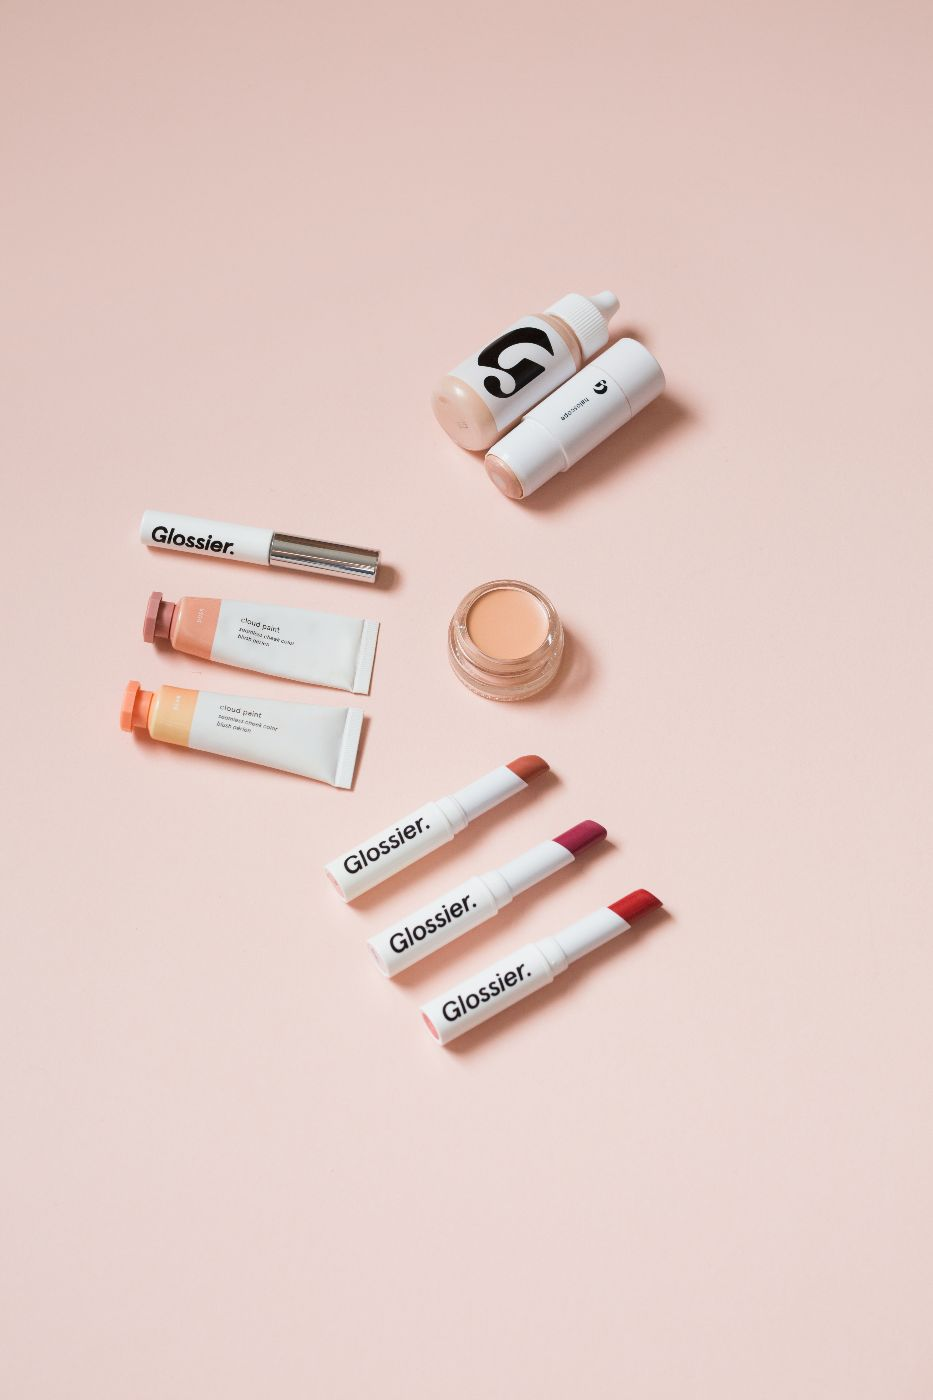 theannaedit-glossier-launches-in-uk-best-worst-products-october-2017-5